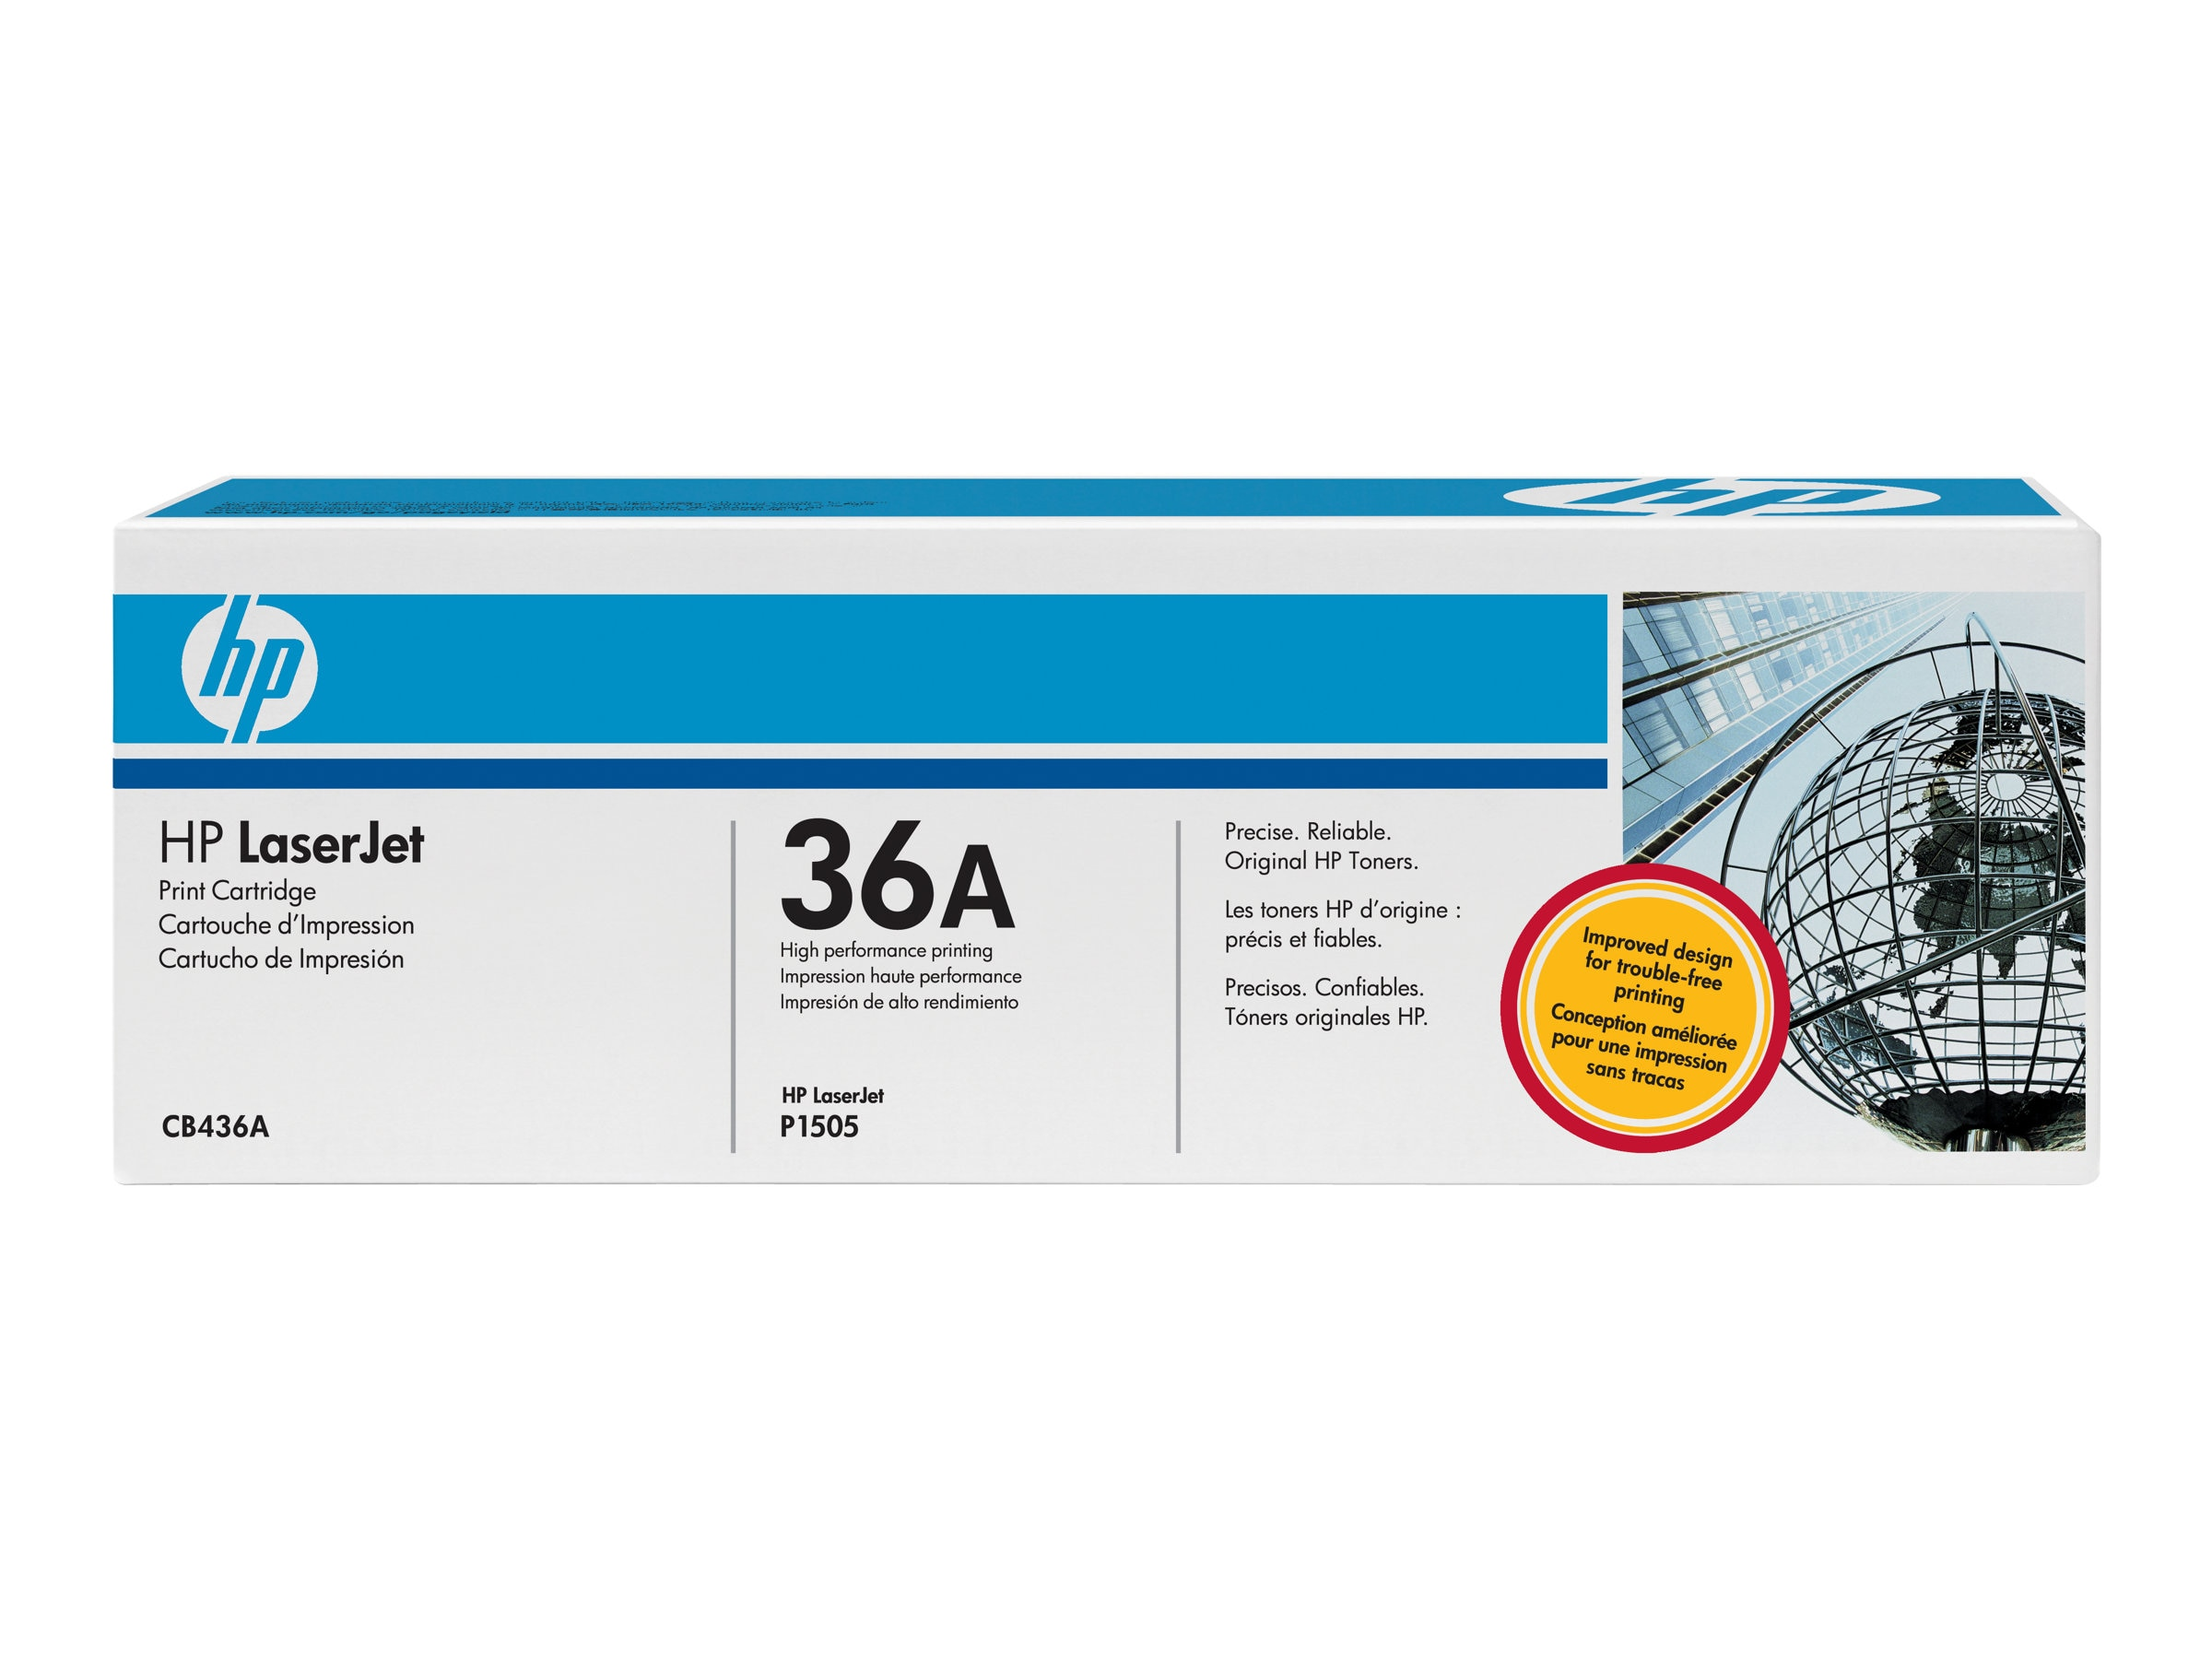 HP 36A (CB436A) Black Original LaserJet Toner Cartridge for HP LaserJet P1505 Series Printers, CB436A, 8156229, Toner and Imaging Components